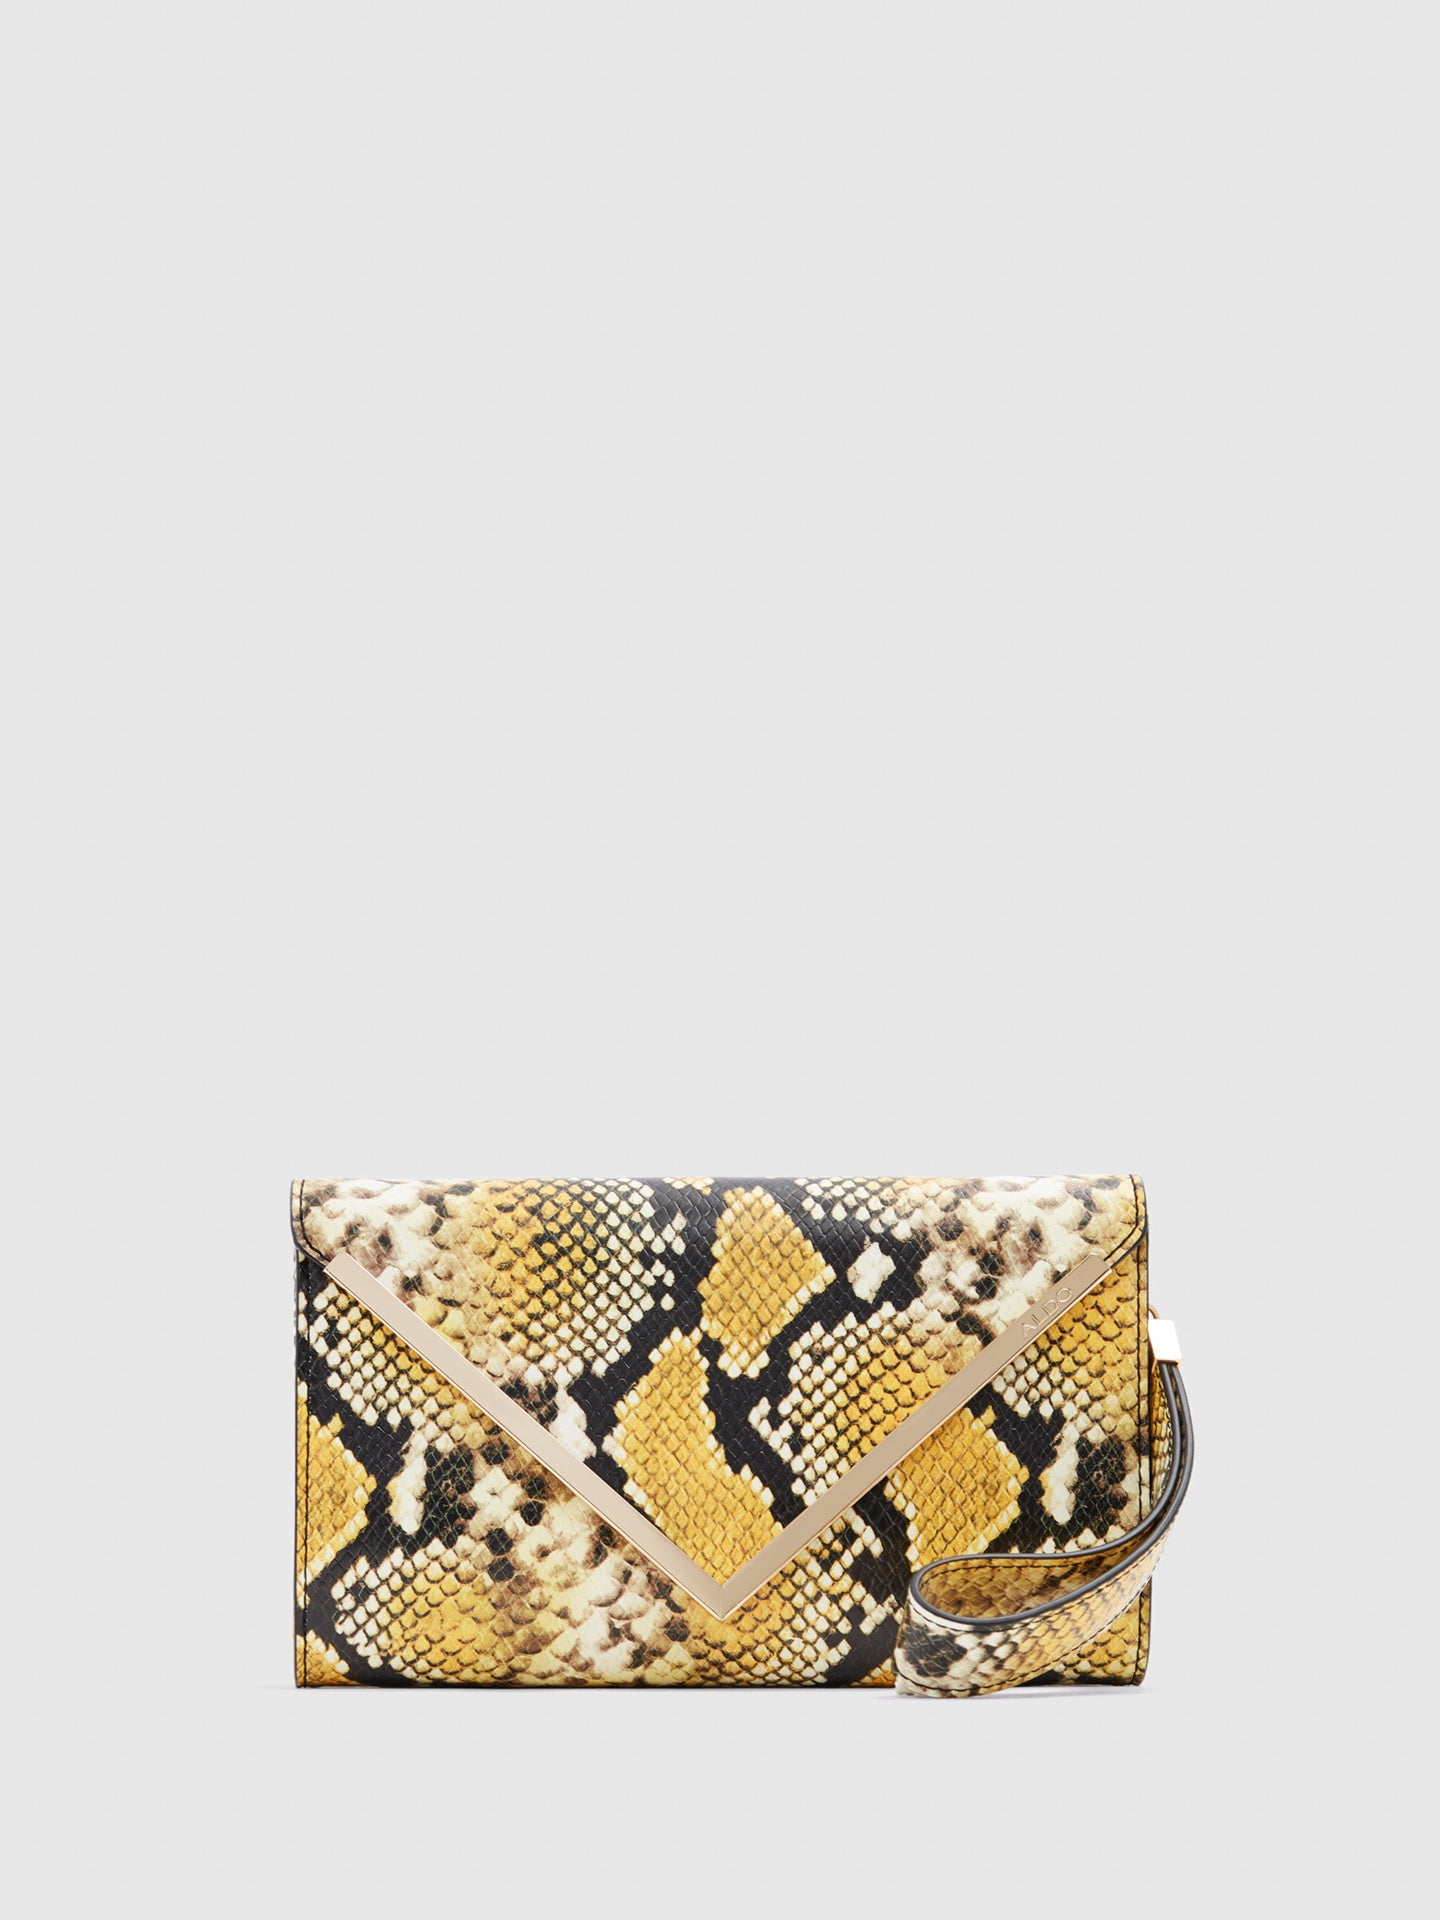 Aldo Yellow Black Clutch